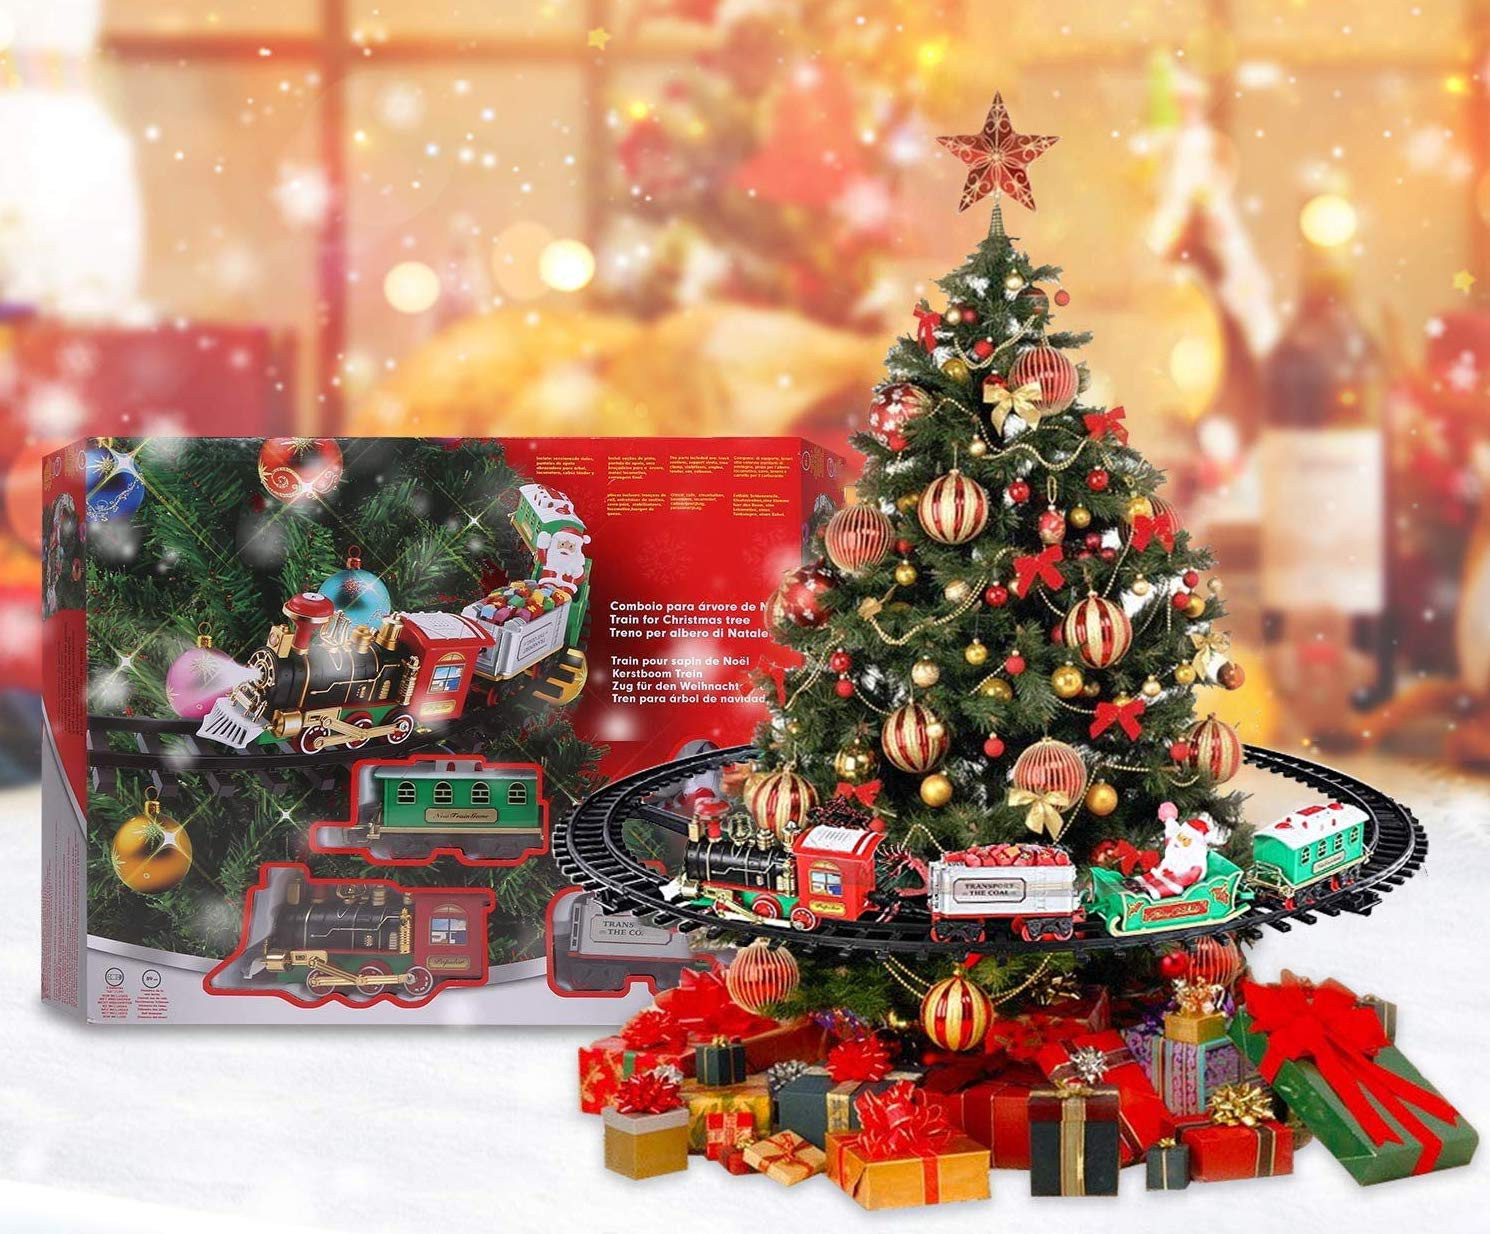 Top Kids Christmas Gifts  Top 10 Best Christmas Gifts for Kids in 2020 Reviews